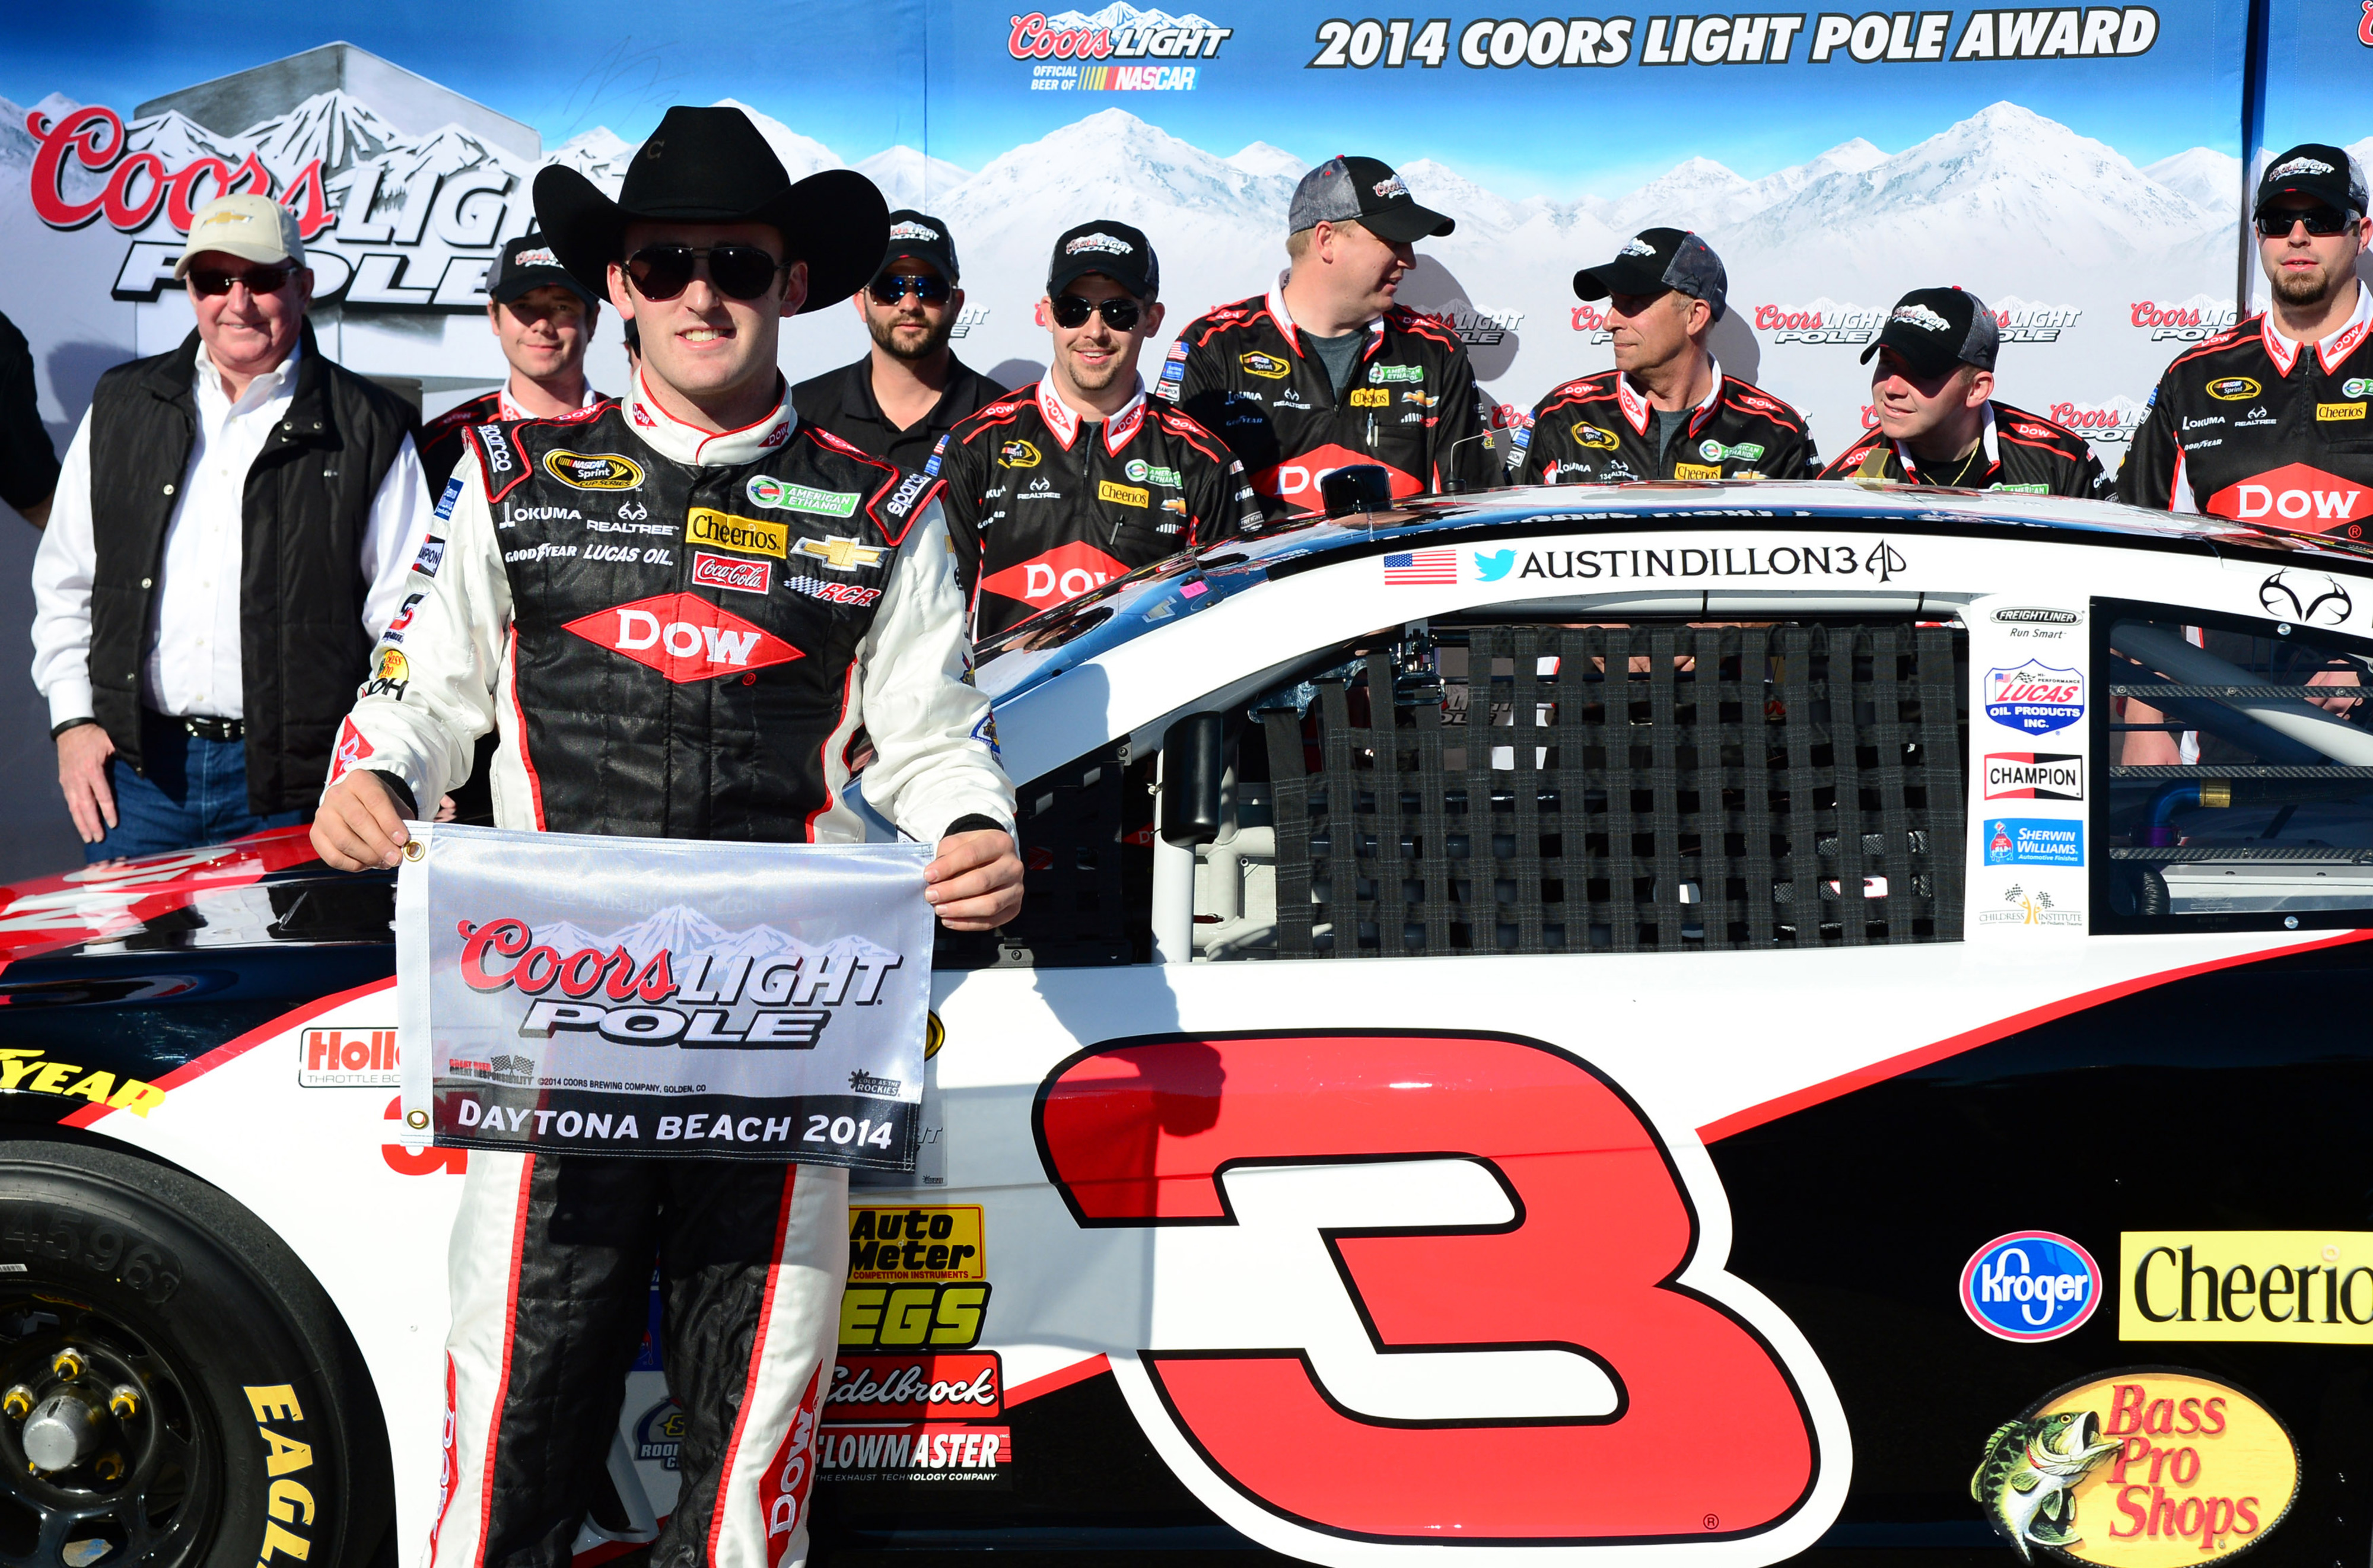 2014 Daytona 500: The legacy of the No. 3 remains ever strong